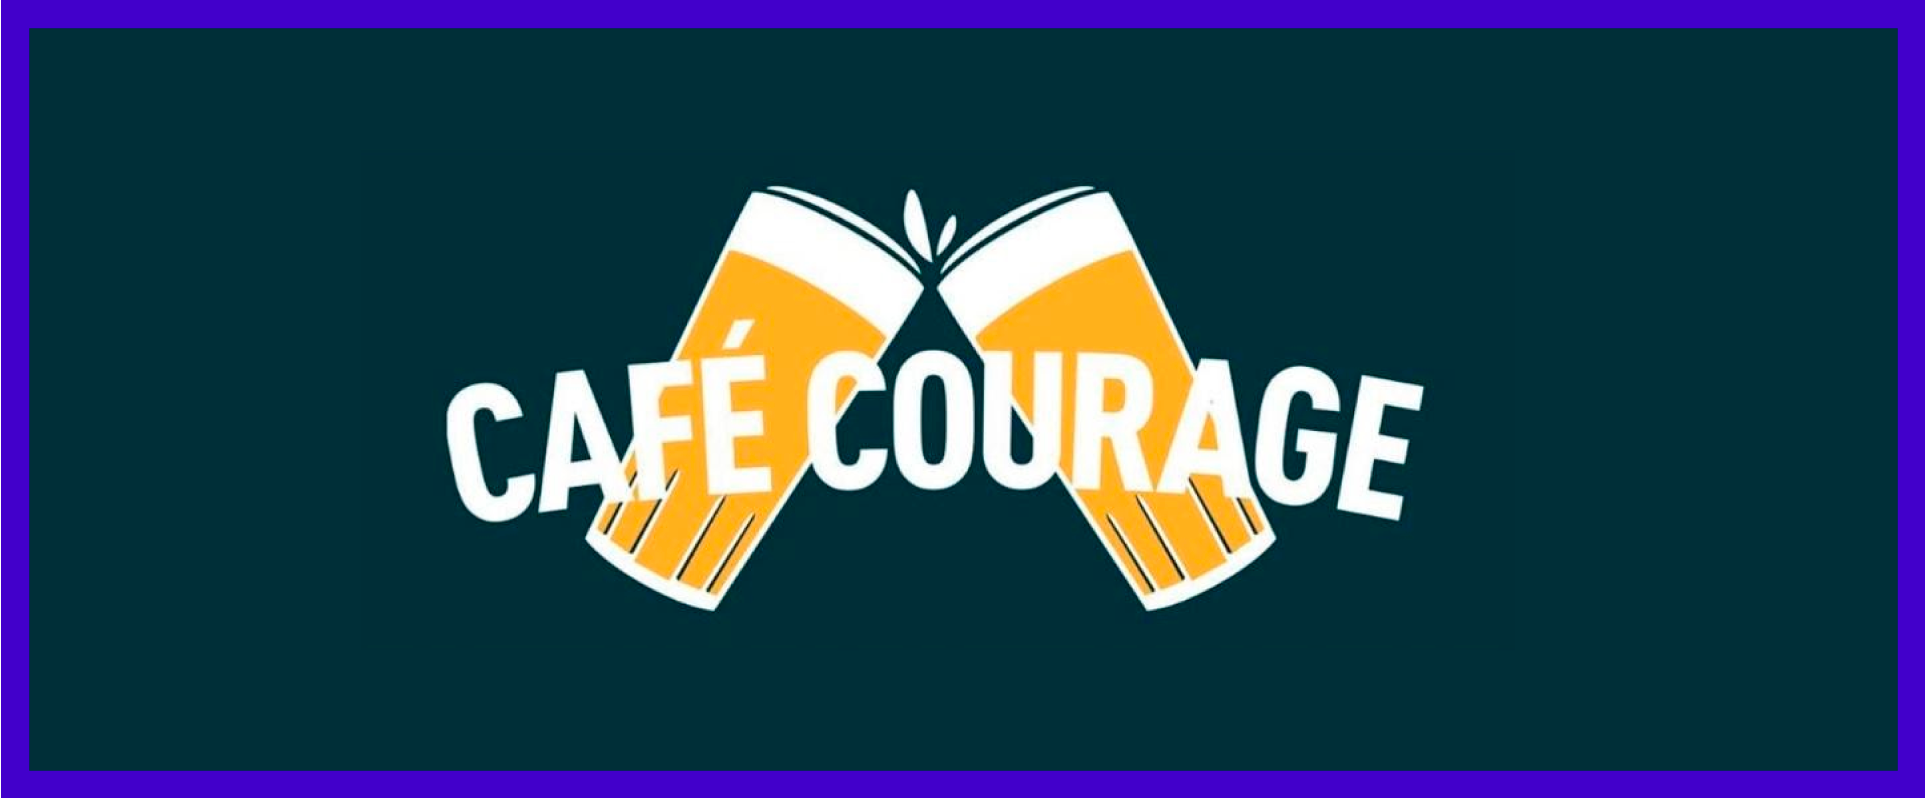 Café Courage is an initiative by AB InBev to support bars during lockdown